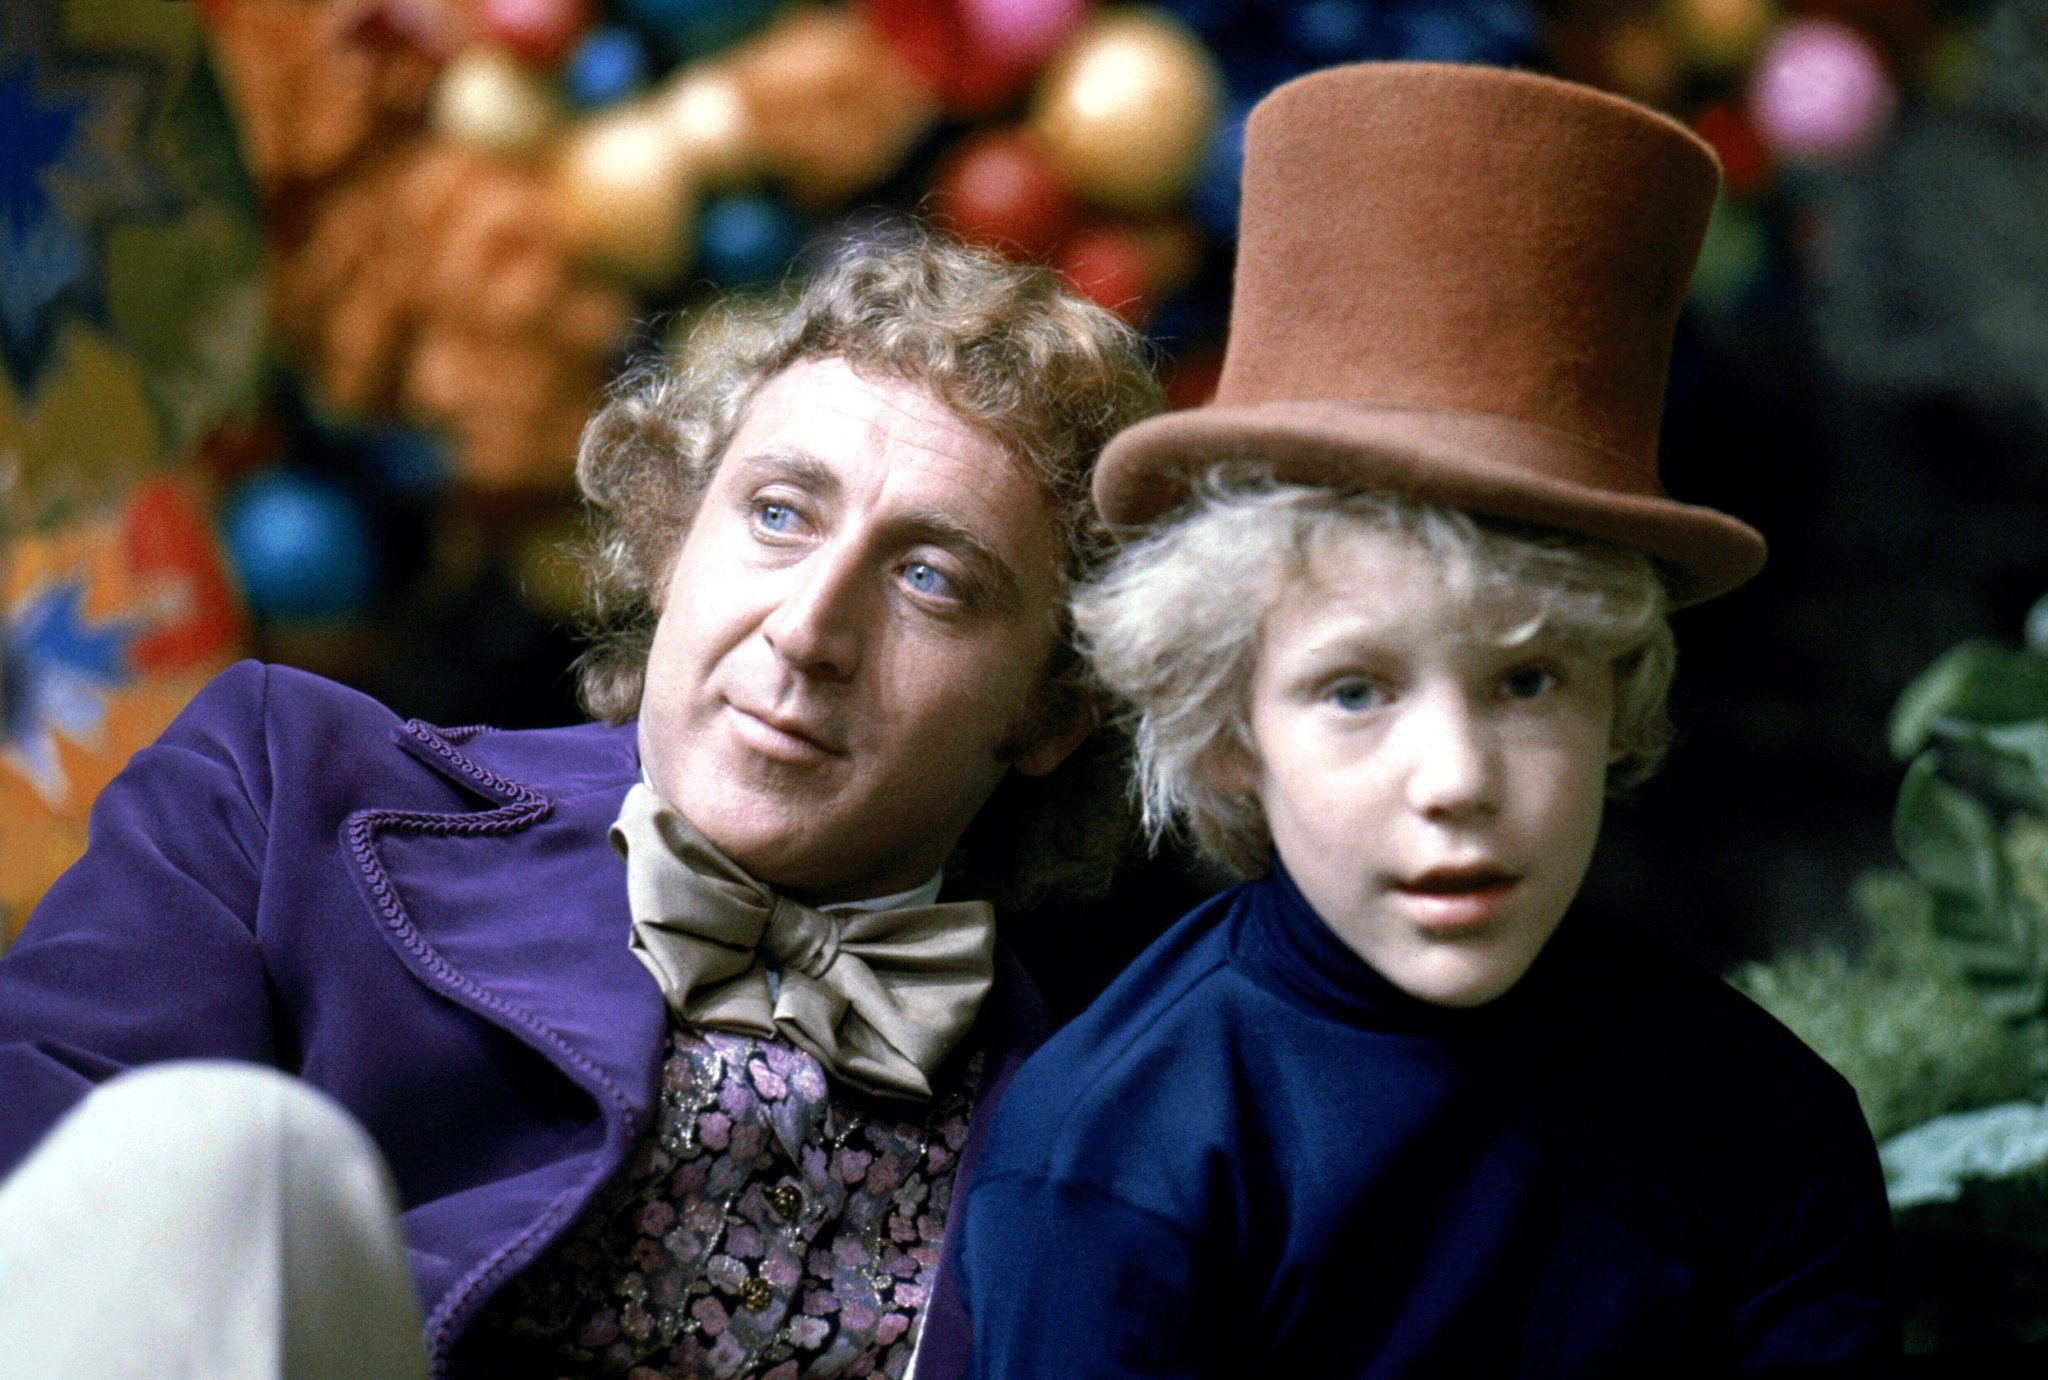 'Willy Wonka' Cast Celebrates Film's 50th Anniversary And Shares Behind-The-Scenes Secrets